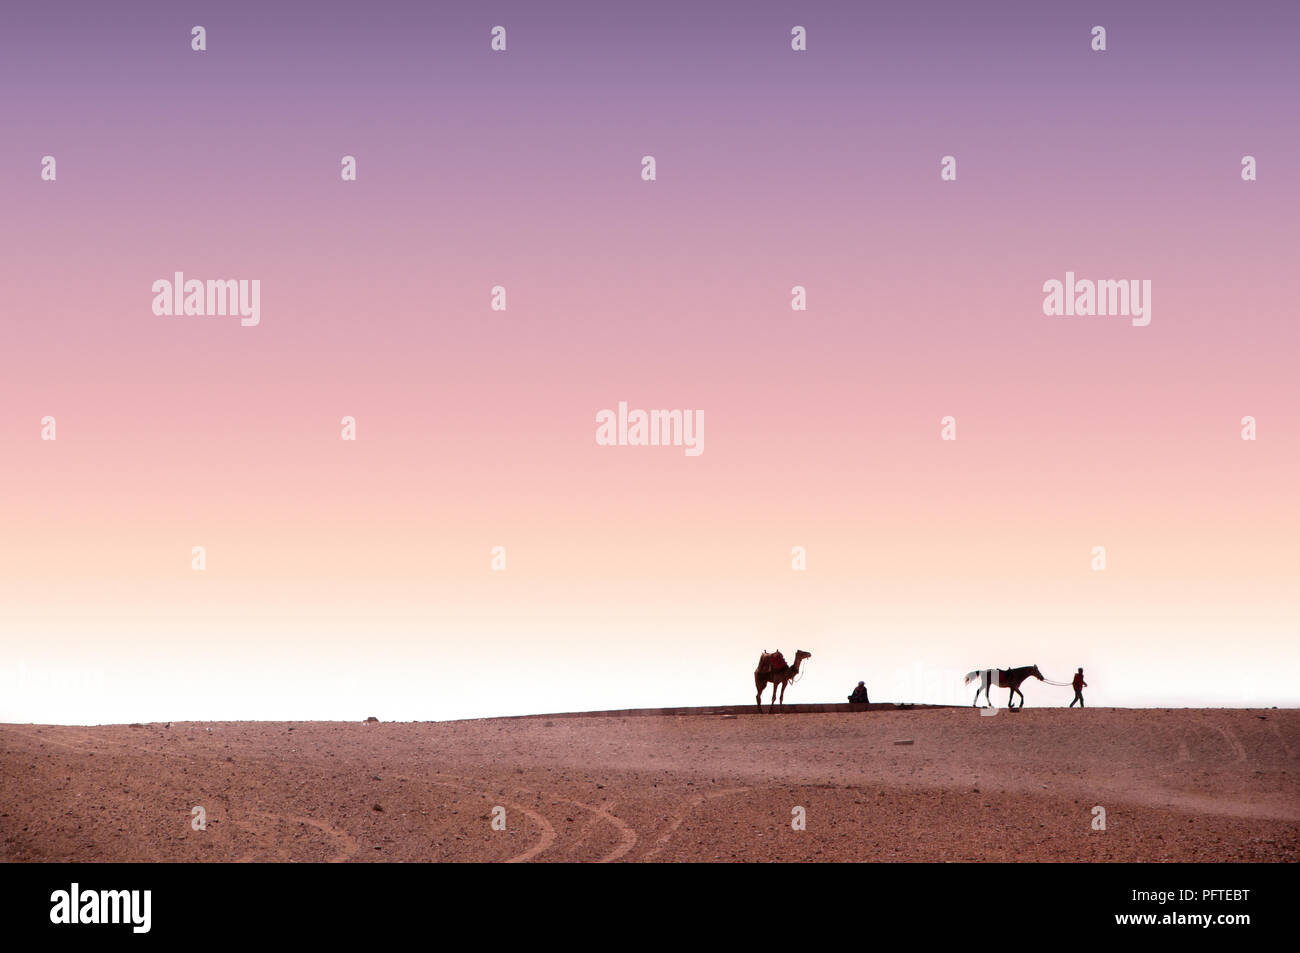 Colorful minimalist landscape of the Sahara desert with silhouettes of camel, horse and man over pink and purple sunset sky, Egypt, Africa Stock Photo